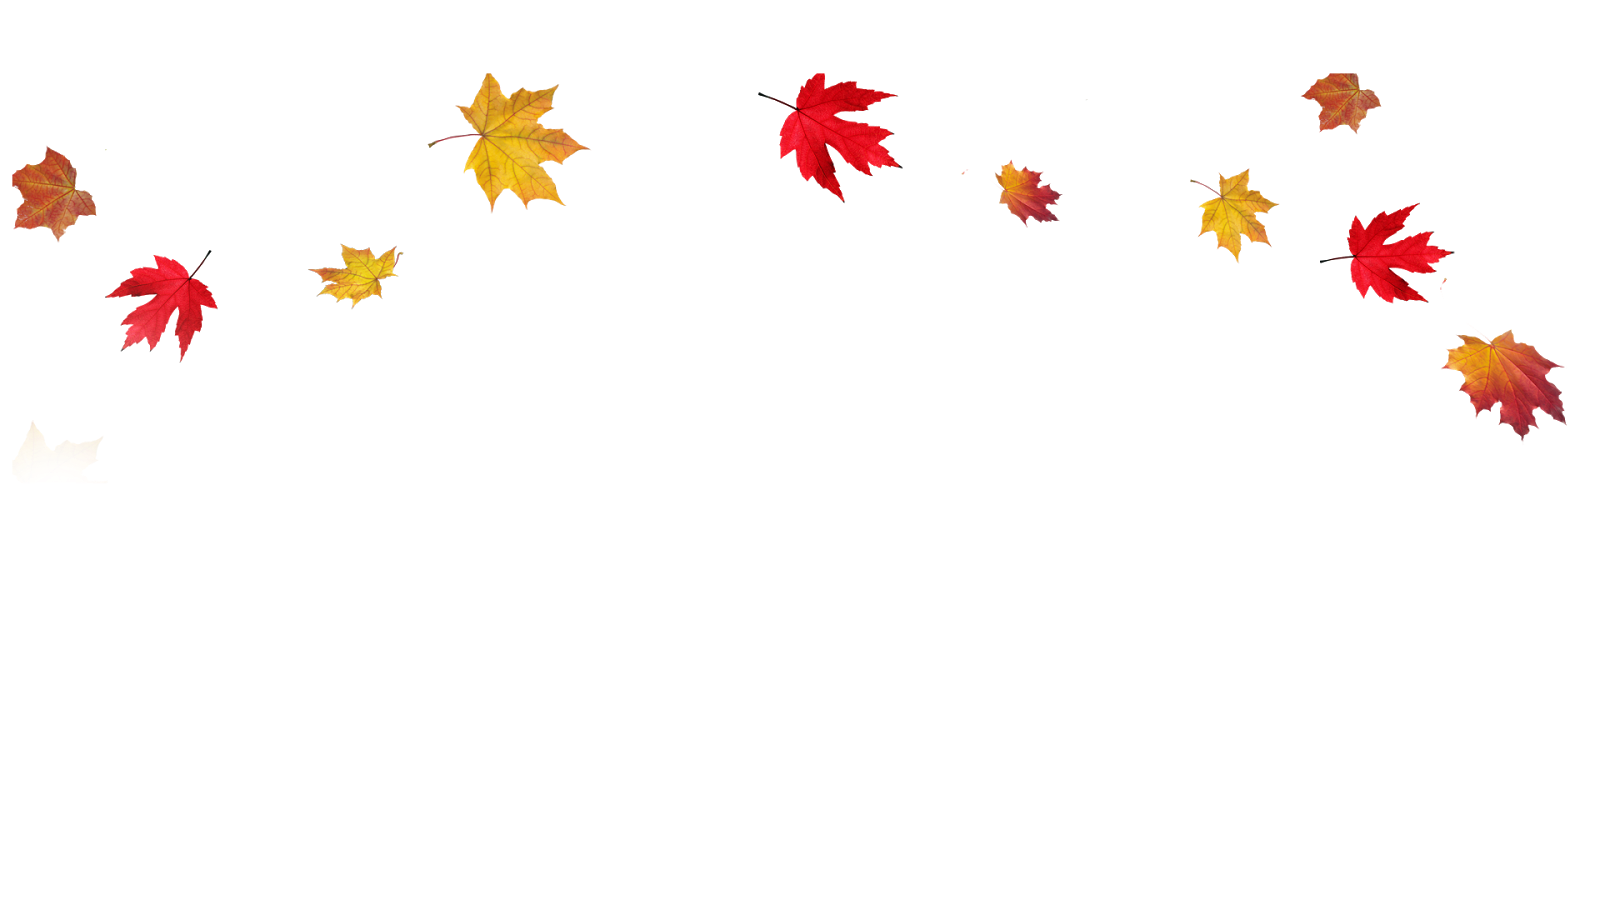 Transparent Fall Leaves Border PNG Image